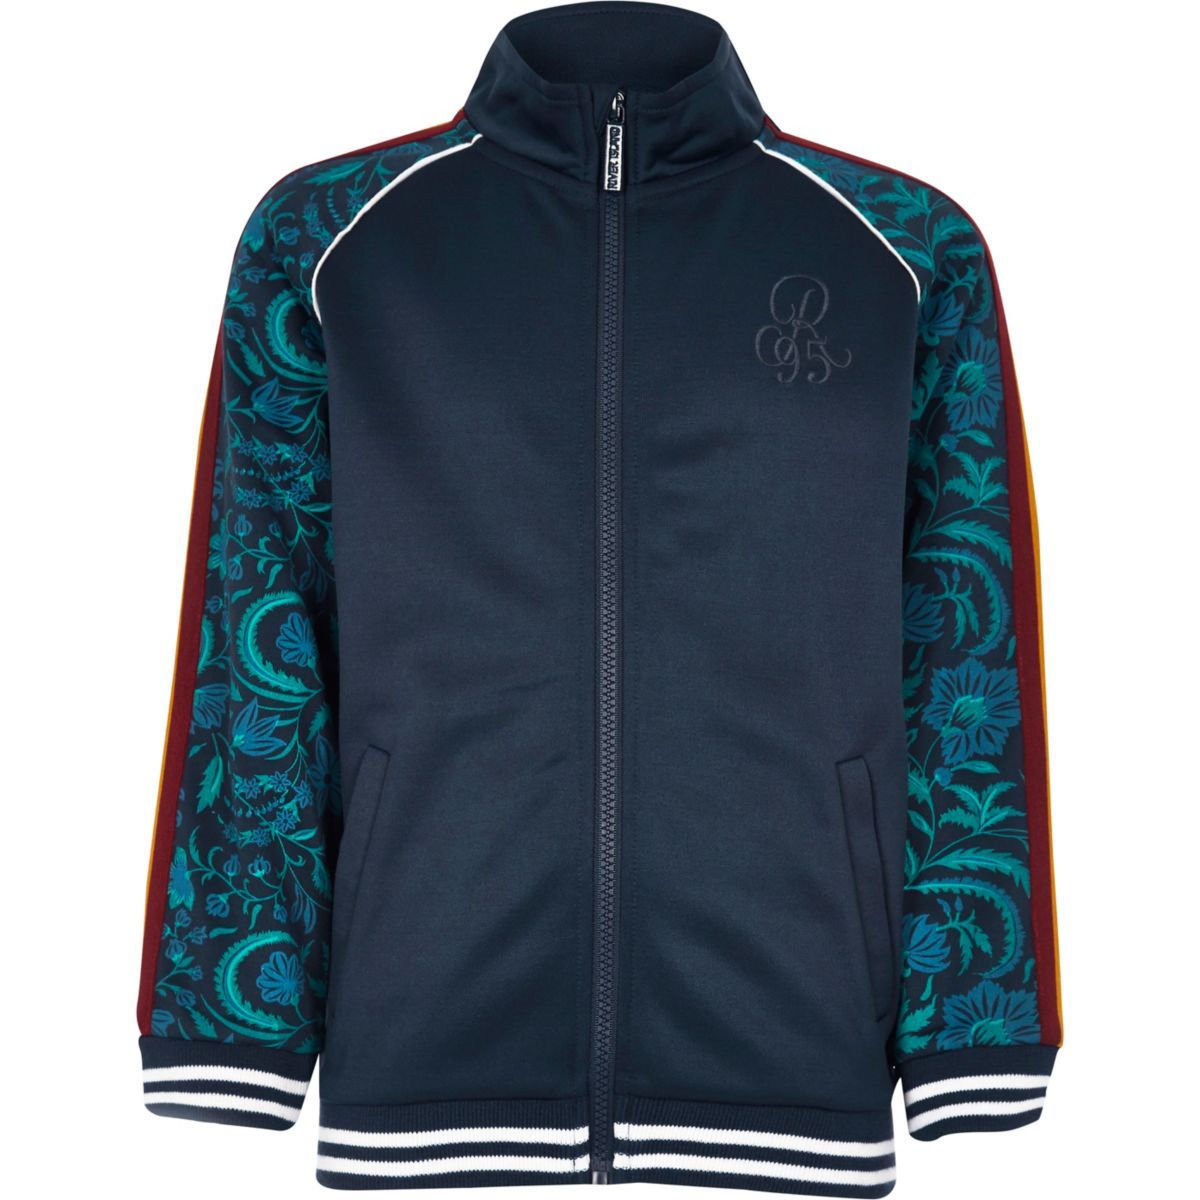 Boys navy floral printed track jacket